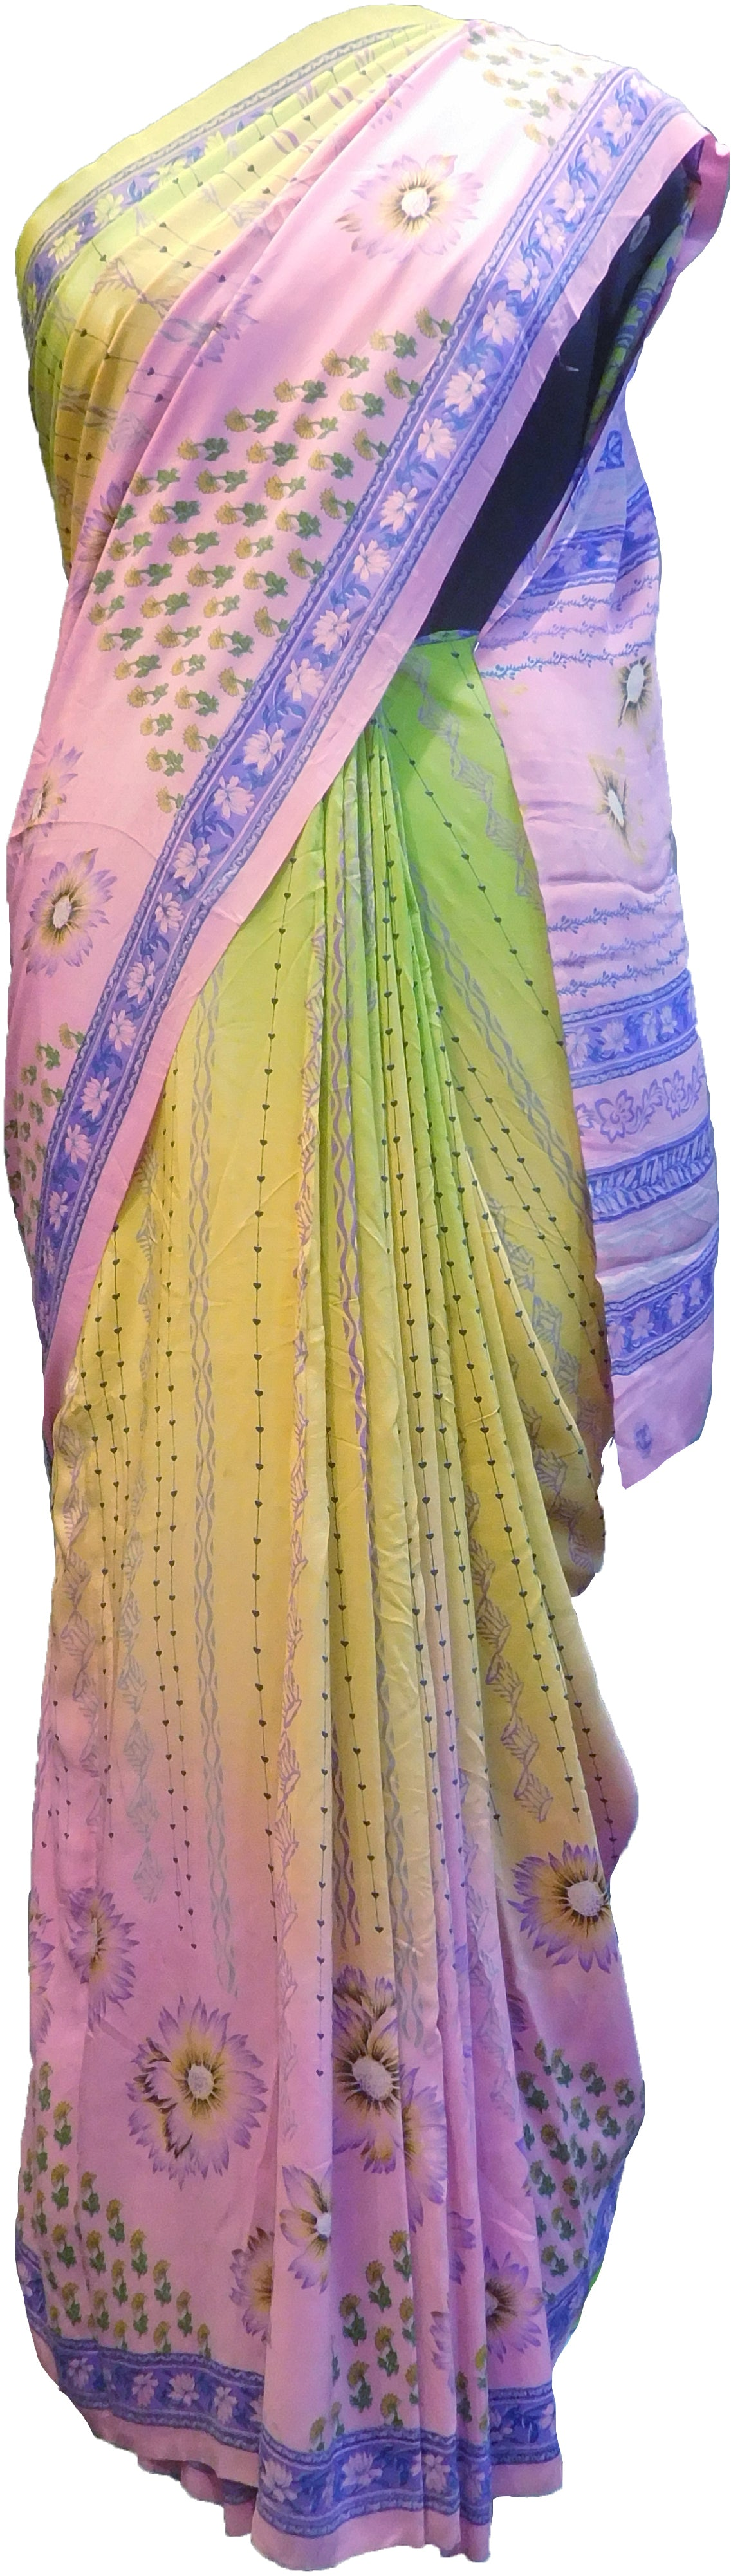 SMSAREE Multi Color Designer Wedding Partywear Pure Crepe Hand Brush Print Hand Embroidery Work Bridal Saree Sari With Blouse Piece RP369